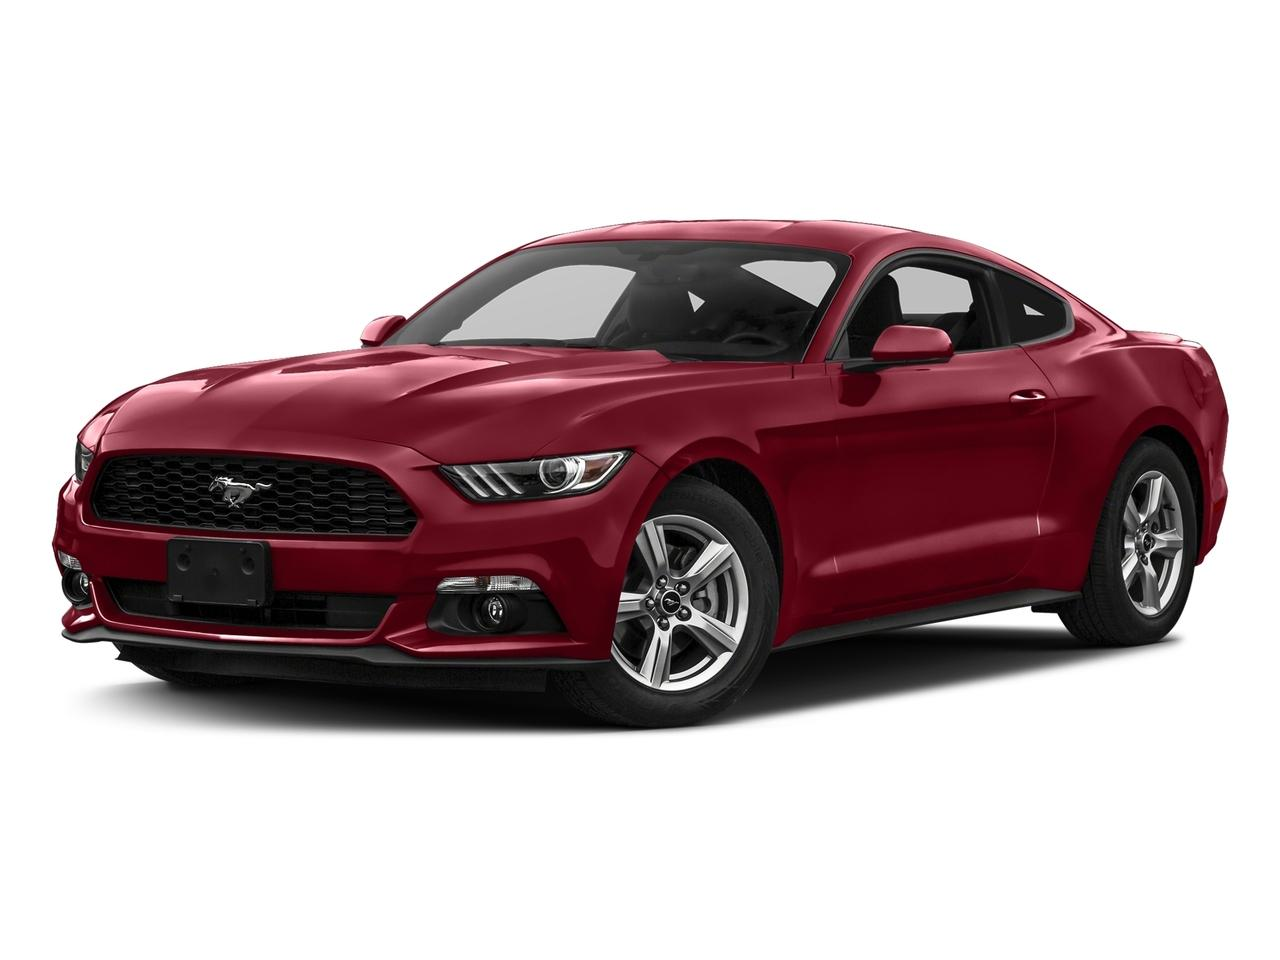 2017 Ford Mustang Vehicle Photo in Fort Worth, TX 76119